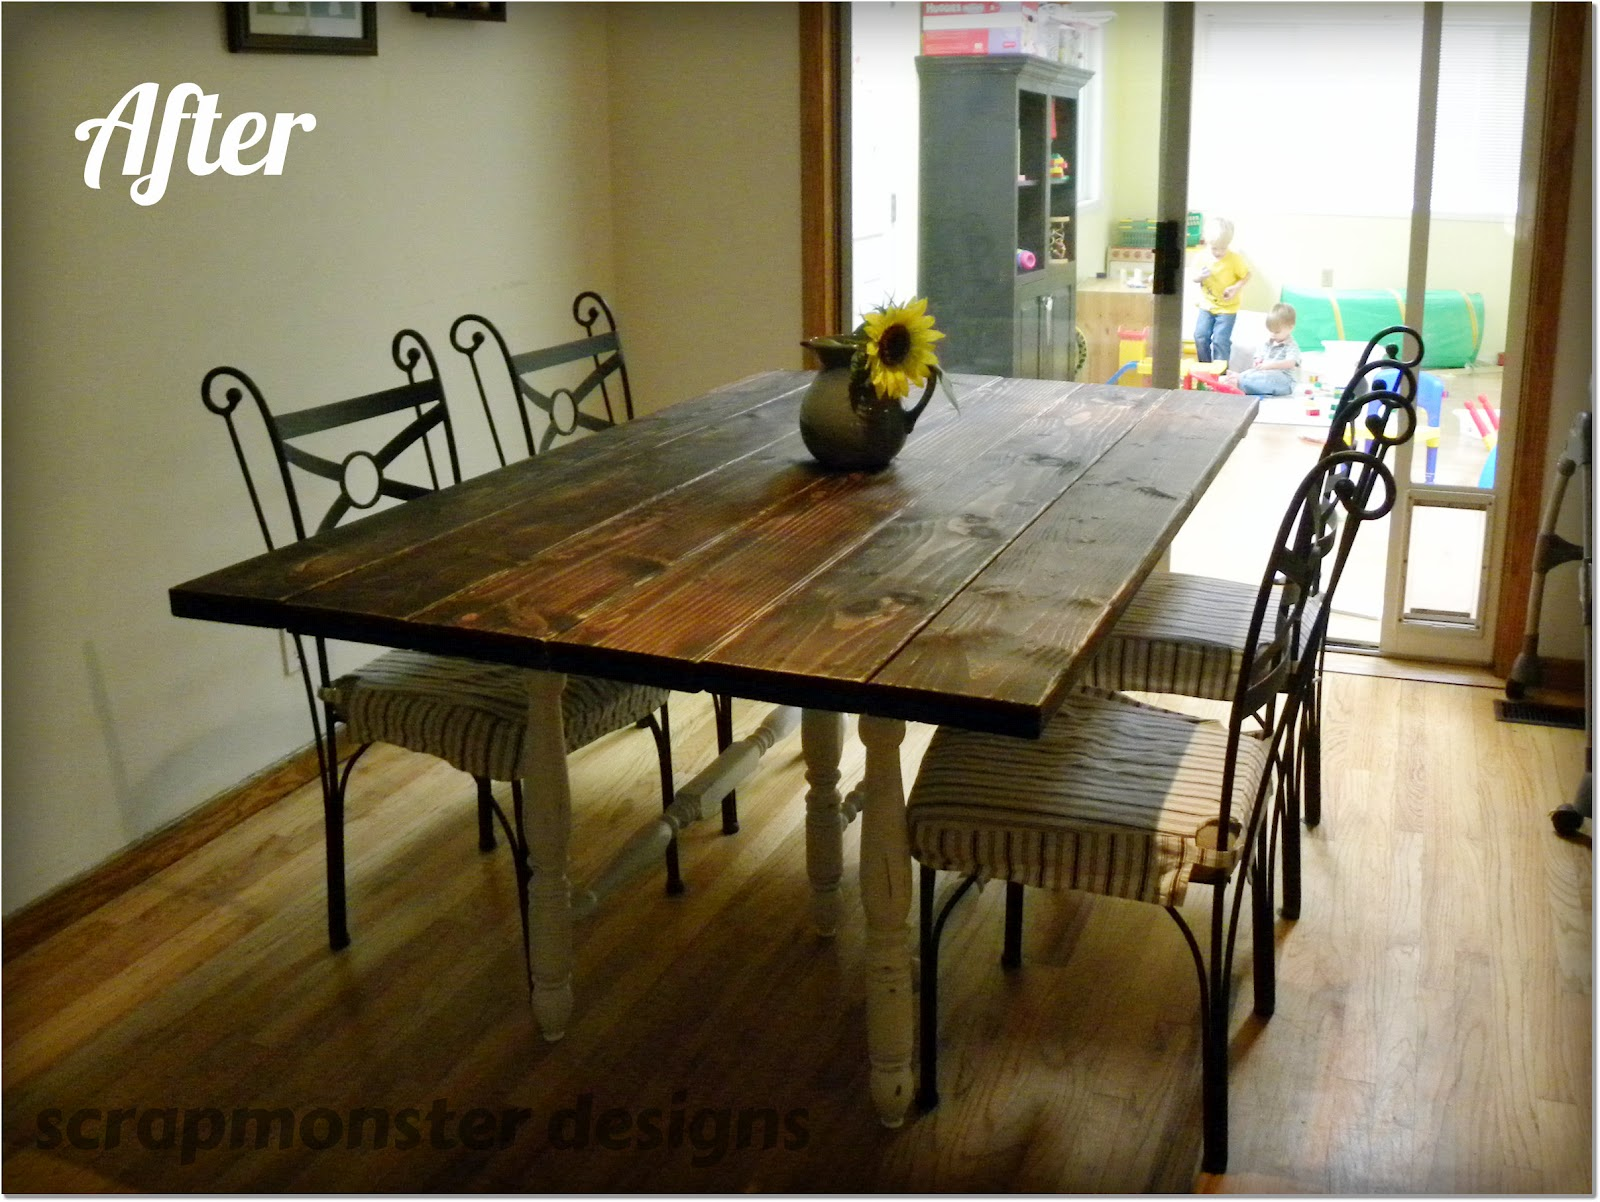 making a dining room table | scrapmonster: Rustic Dining Table Make-Over